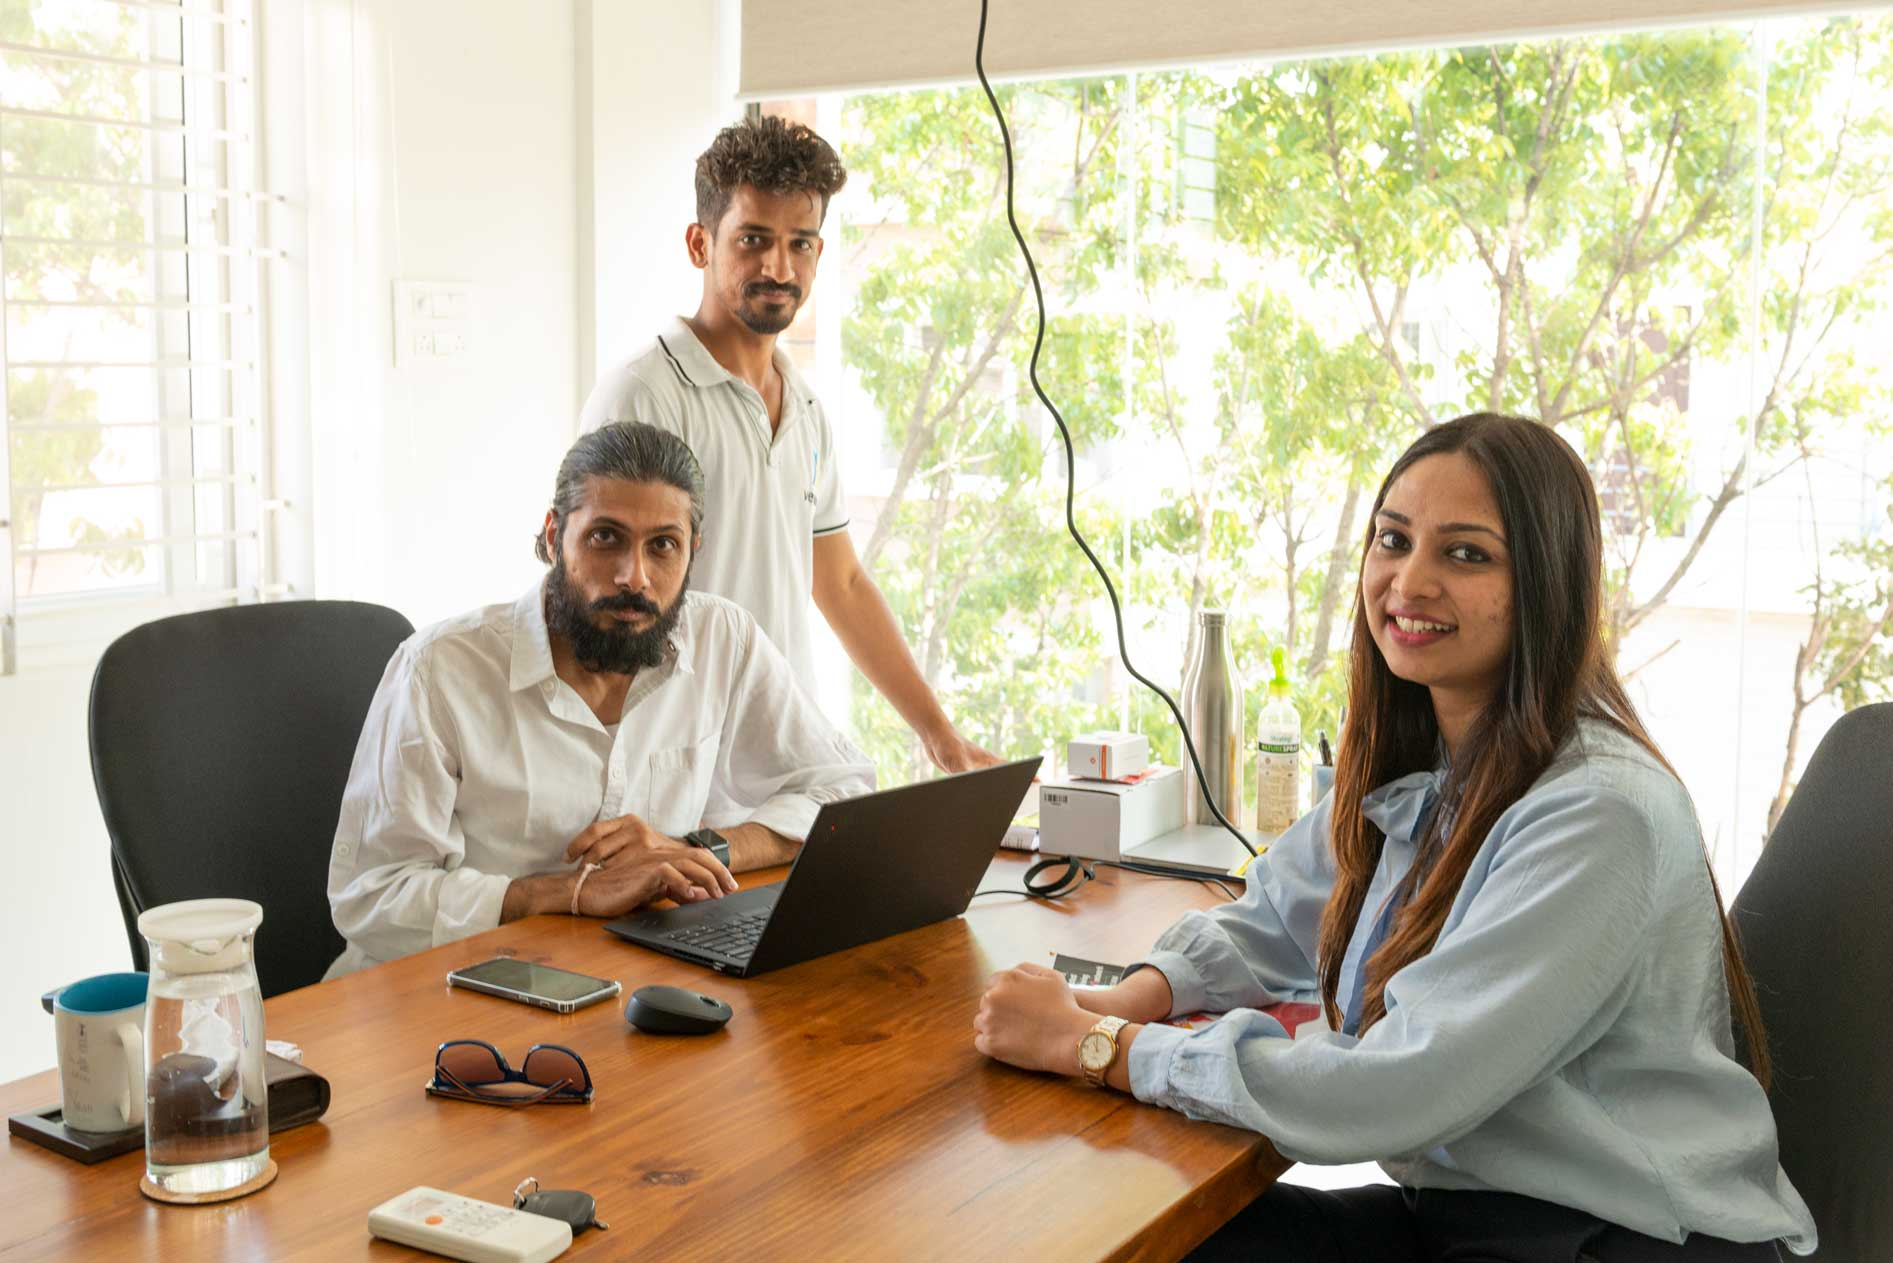 Akshay Markandey, Founder of VersionX, with a few team members